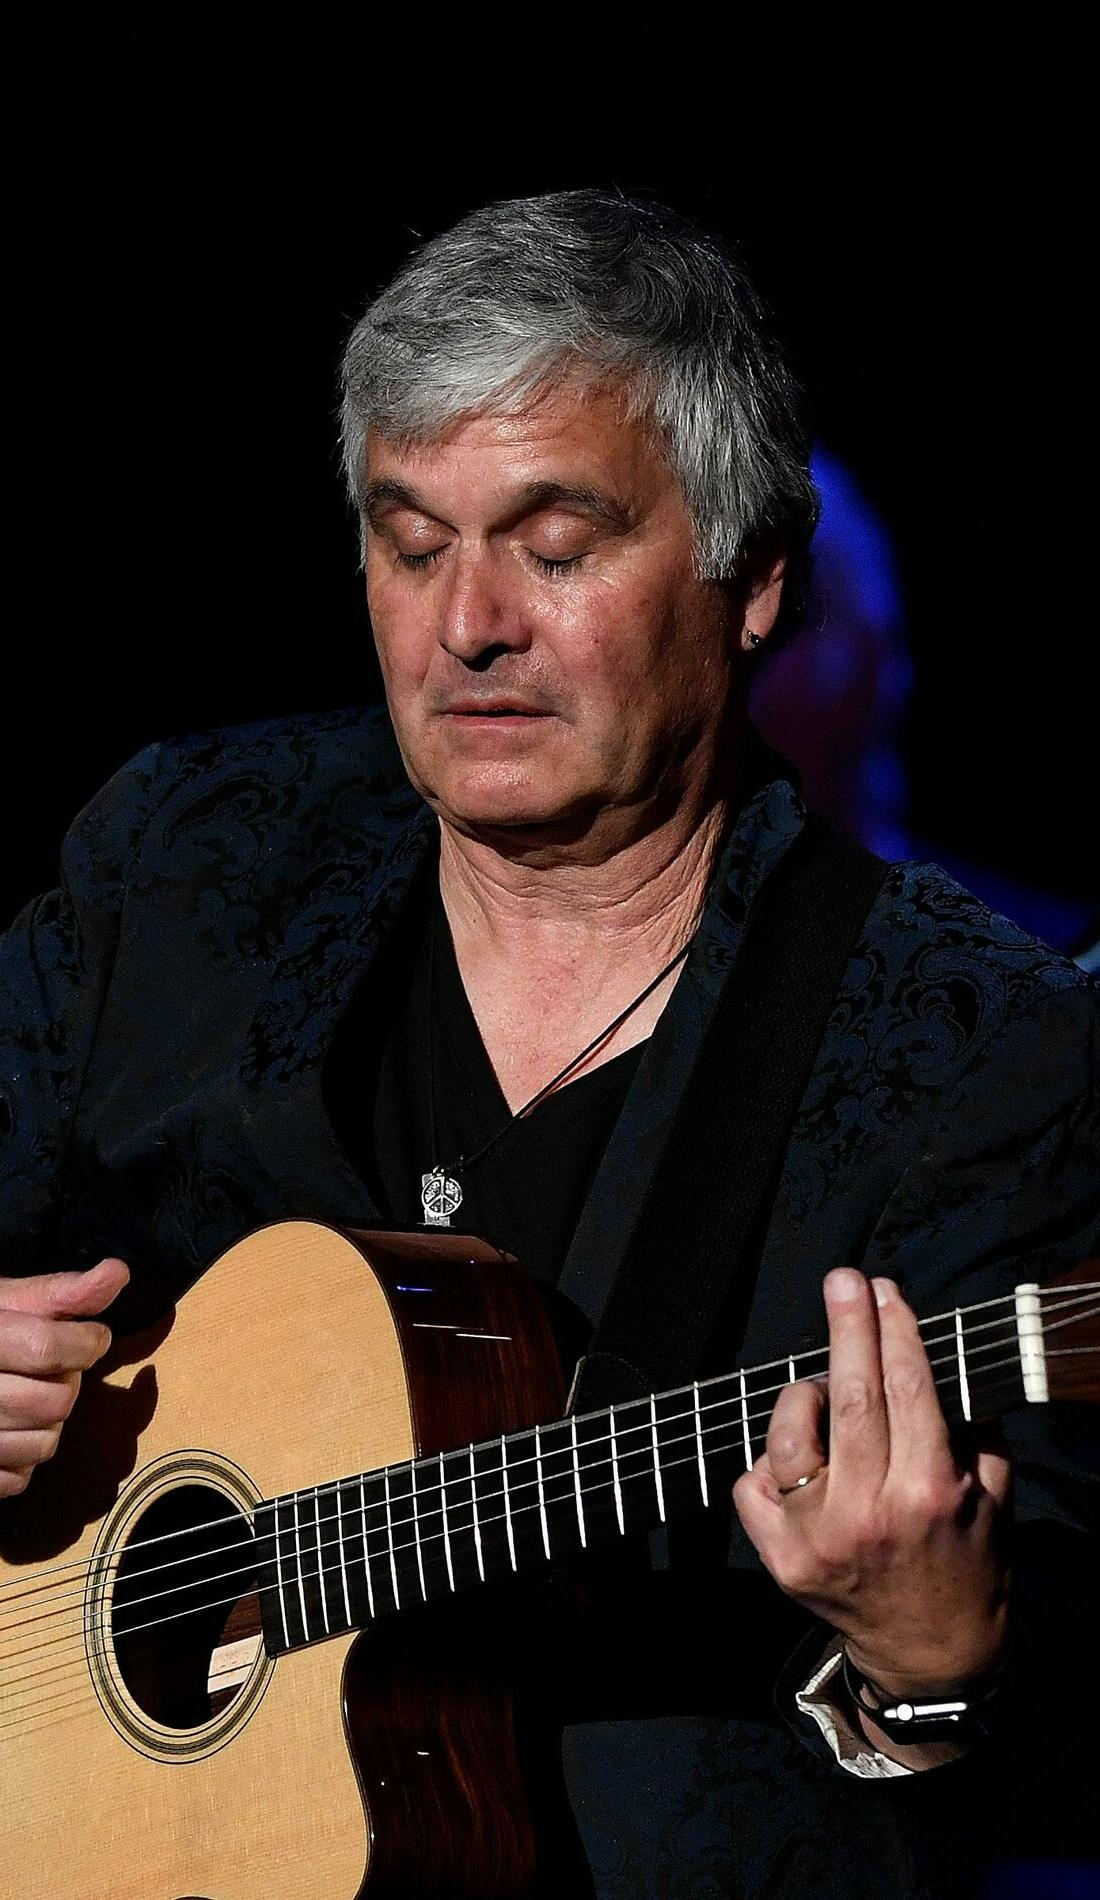 A Laurence Juber live event